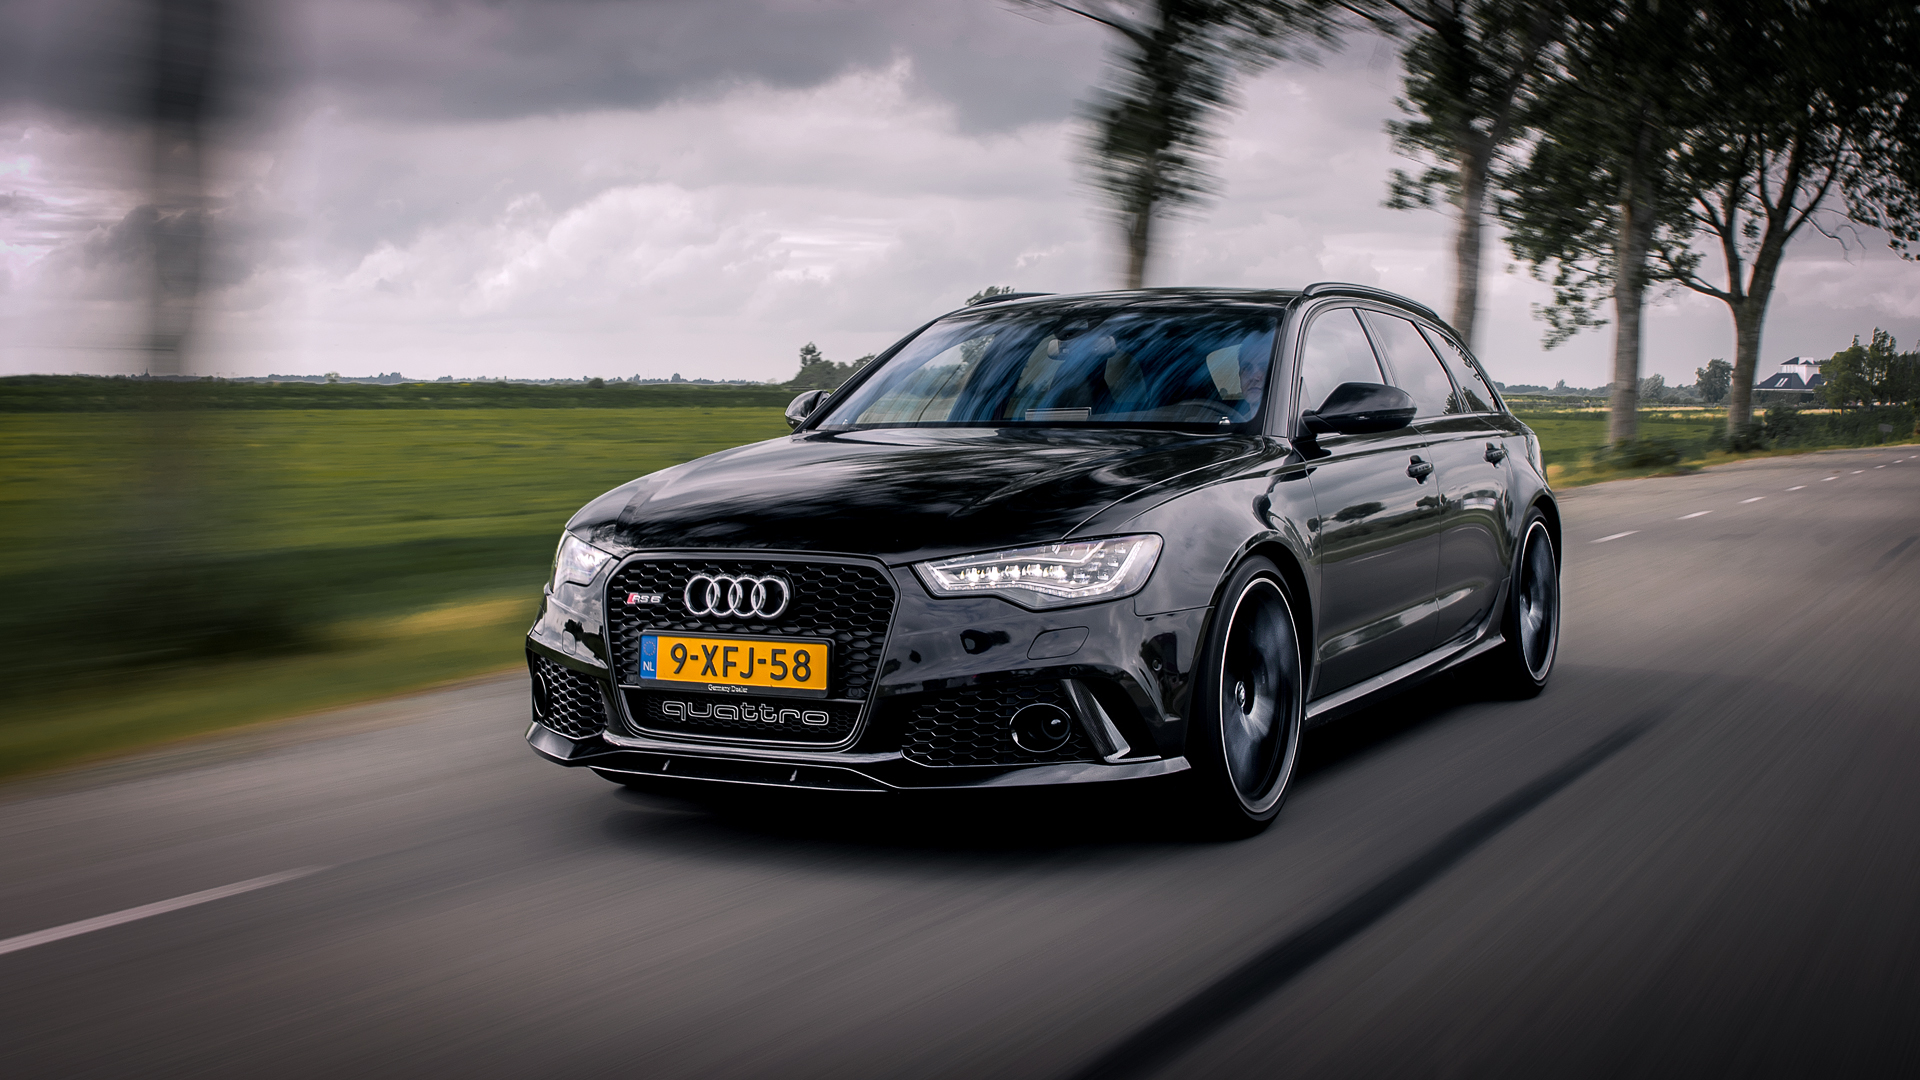 Picture Gallery Audi Rs6 Avant C7 Hartvoorautos Nl